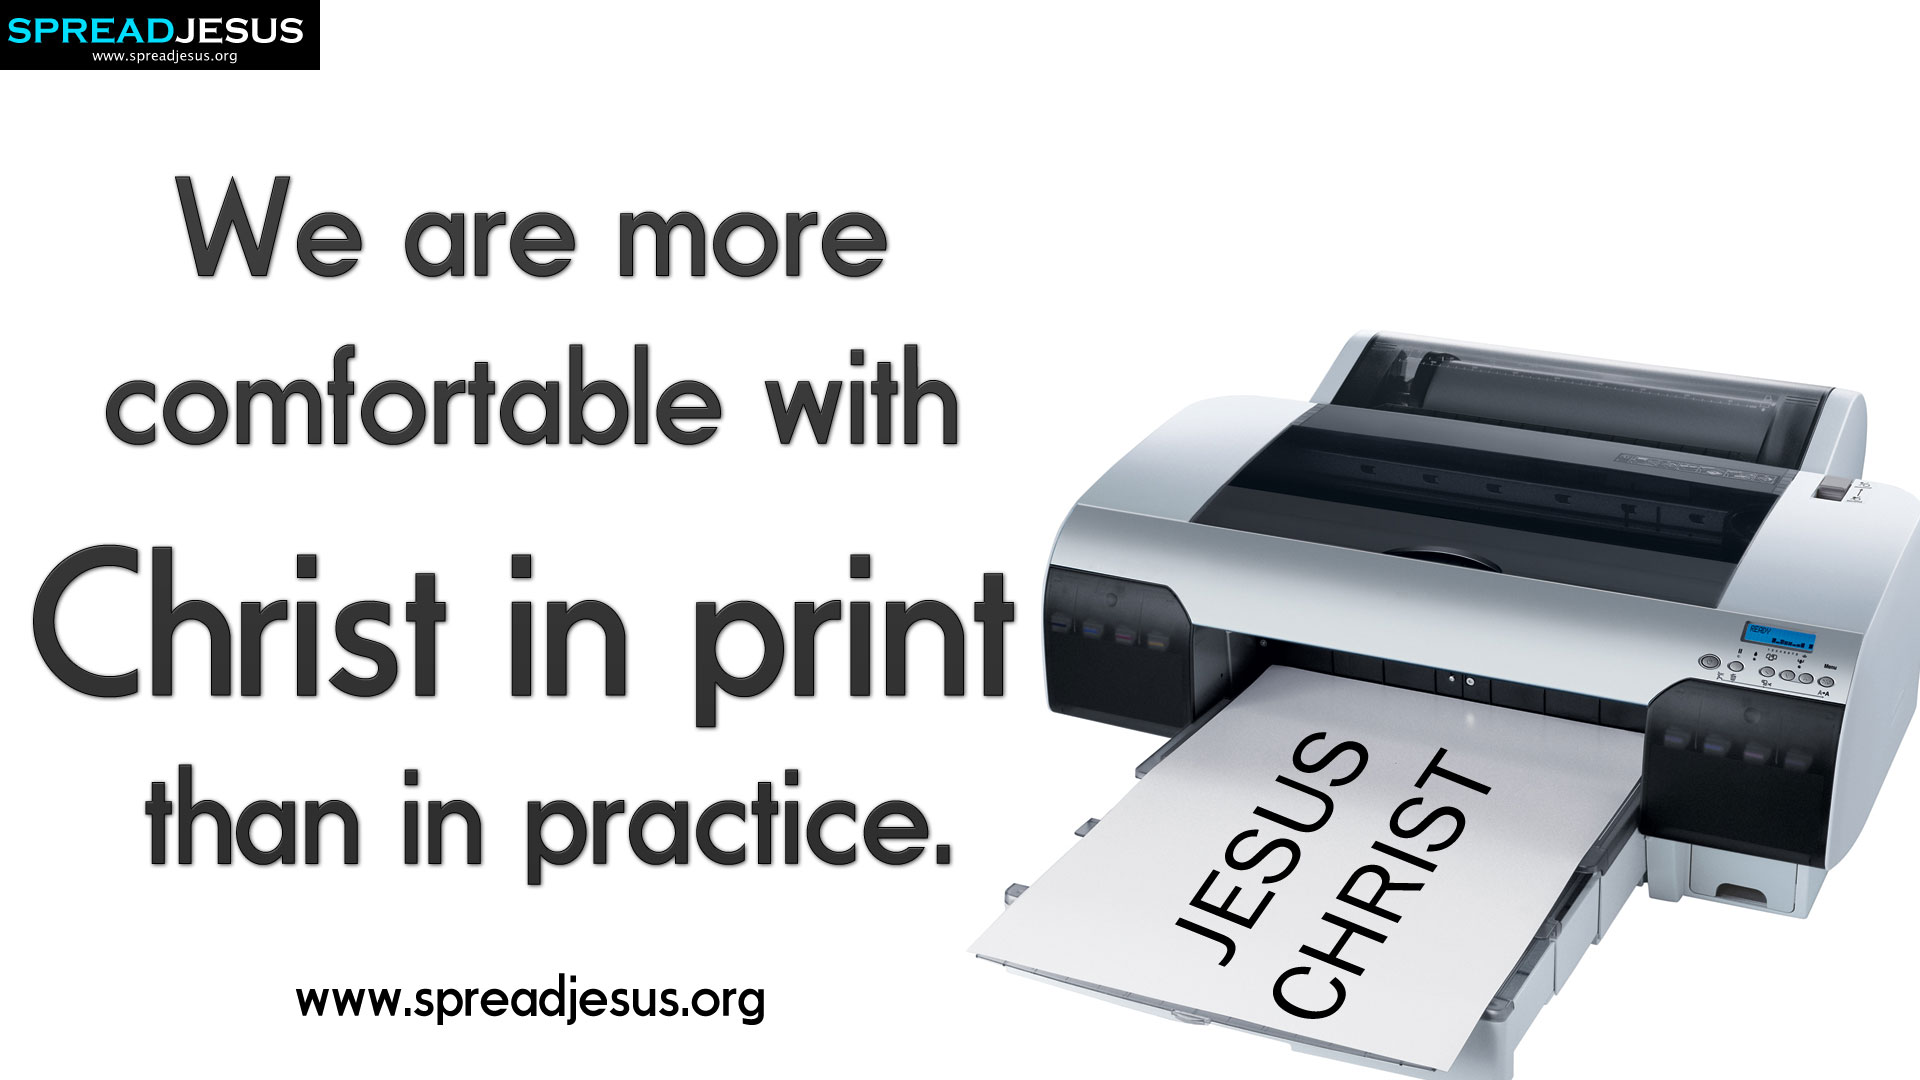 Christ in print than in practice